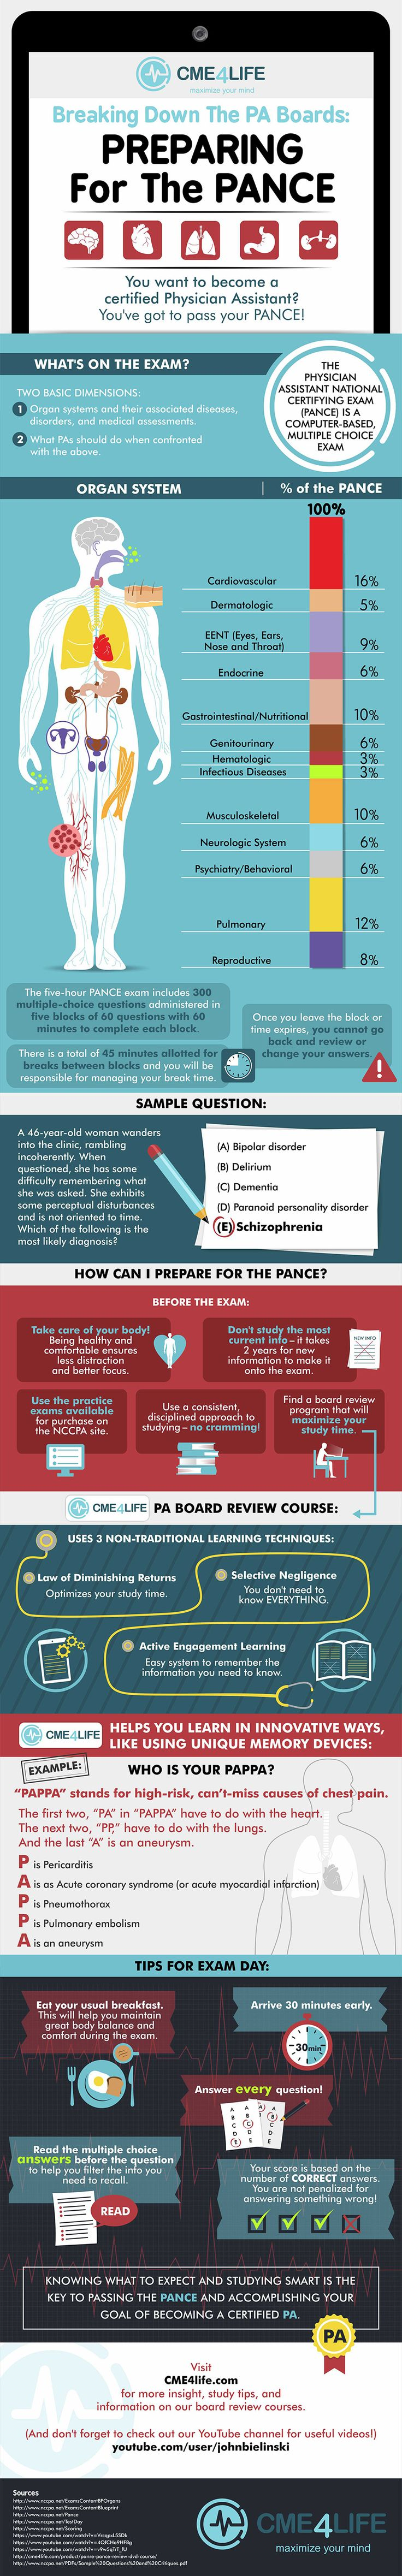 Preparing for the PANCE? Our graphic breaks down the PA Boards like never before. We'll tell you what to expect on exam day, how to study, and what to study.